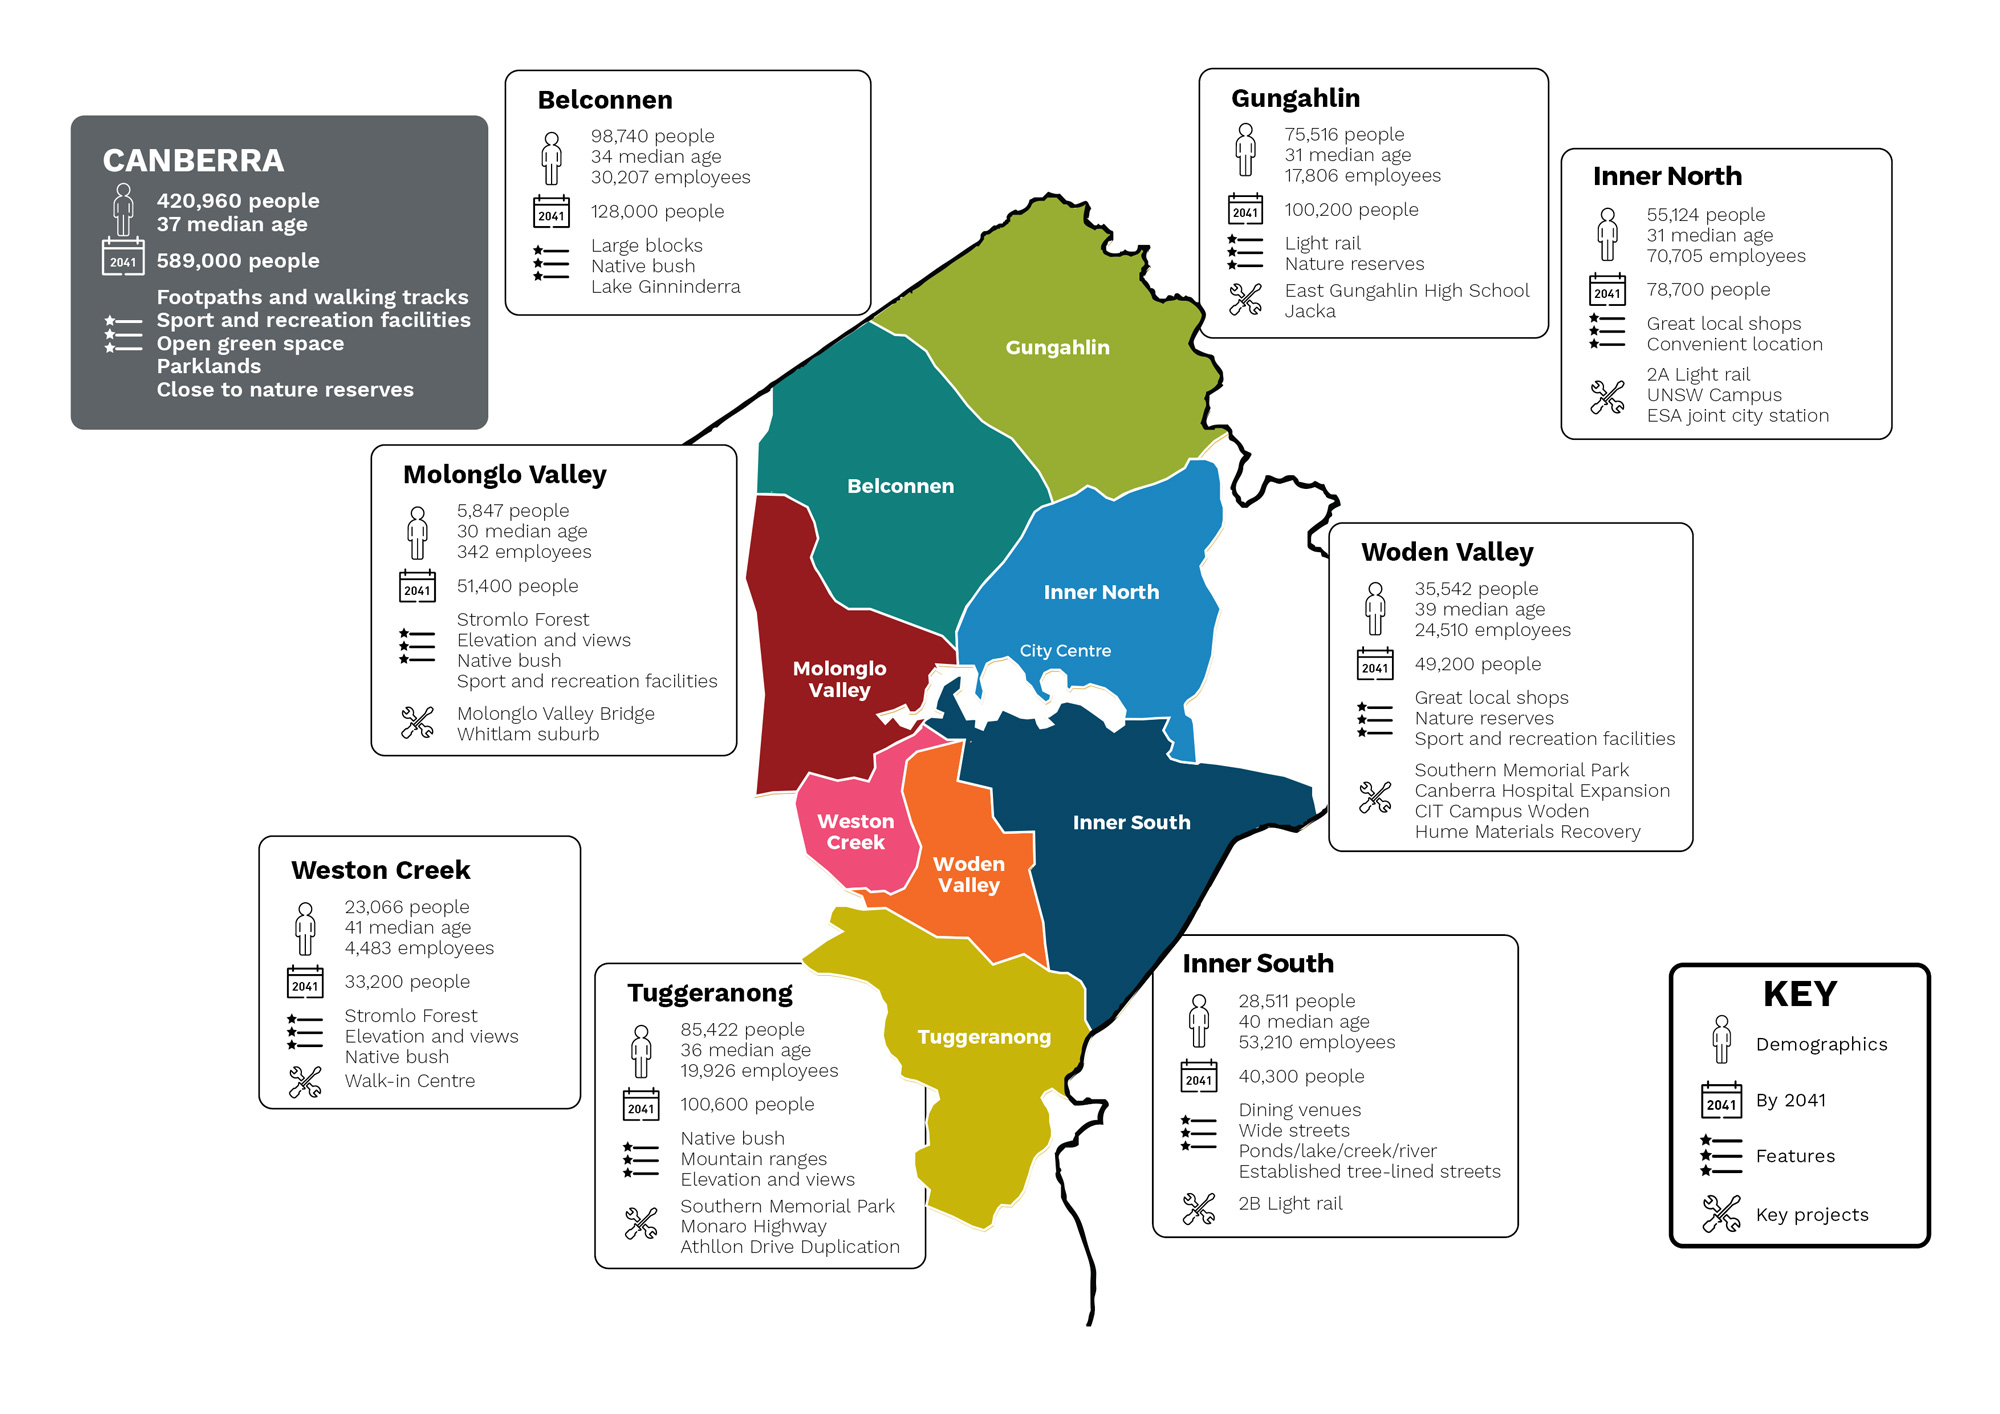 Map of districts in Canberra